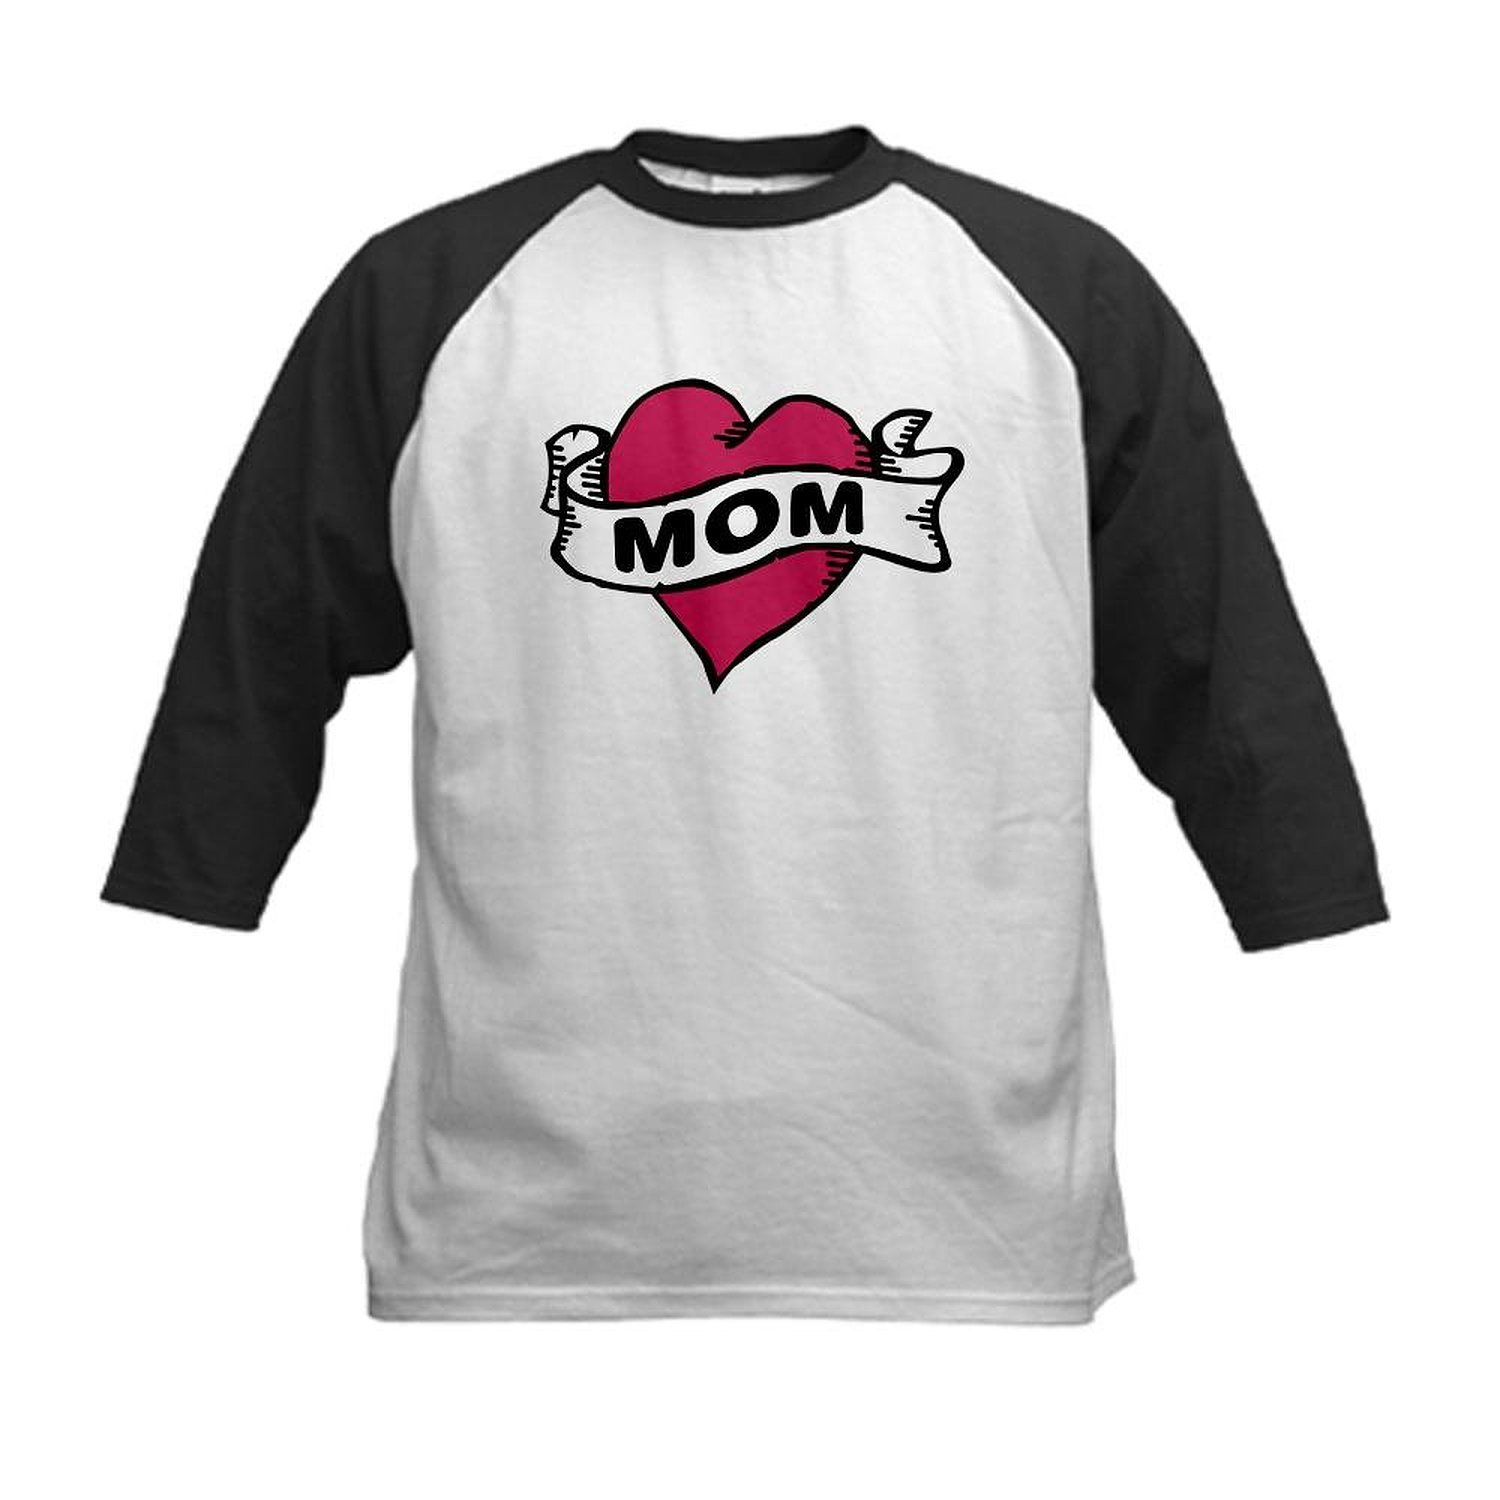 155f71a03 CafePress Kids Baseball Jersey - Mom Heart Tattoo Kids Baseball Jersey